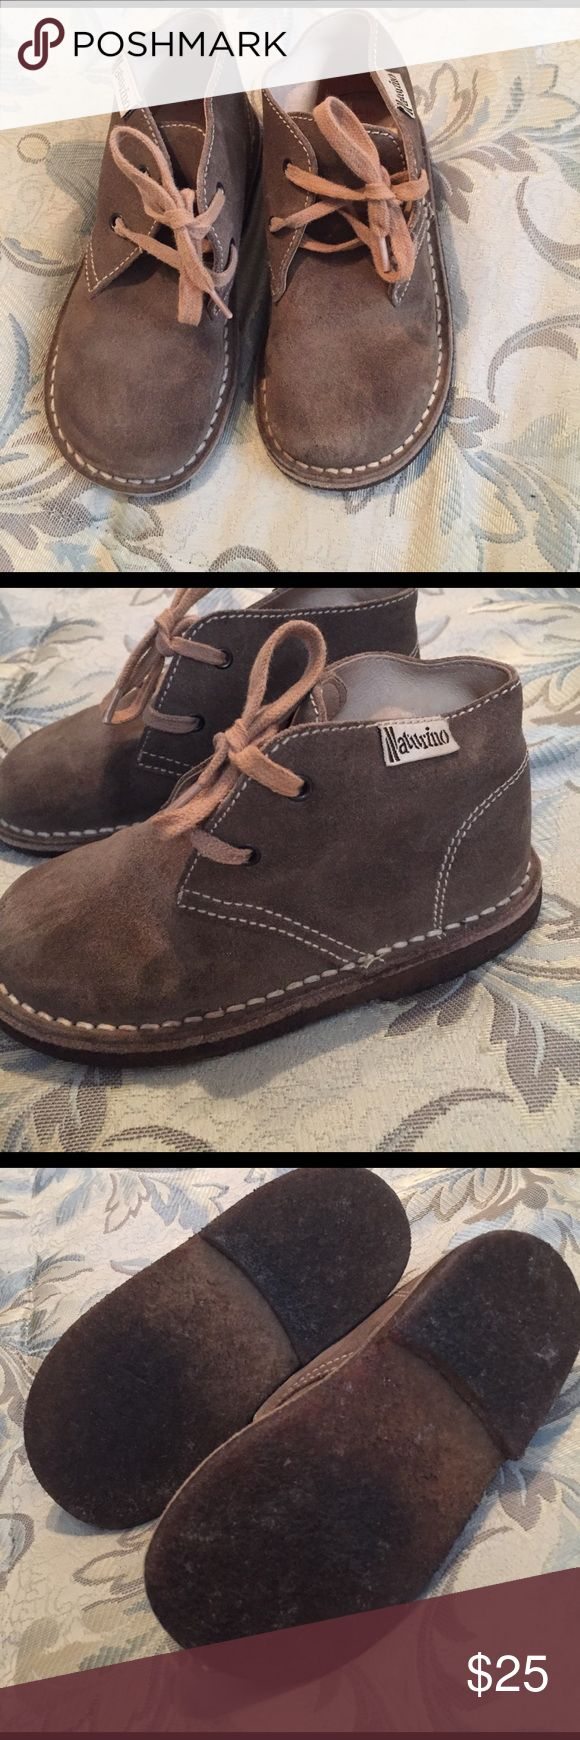 Naturino Falc kids shoes leather suede m in Italy My favorite shoes - been in storage so need a good suede brushing and broken in again.  Can't find size but think about a 10 toddler - message me for measurements - beautiful condition Naturino Shoes